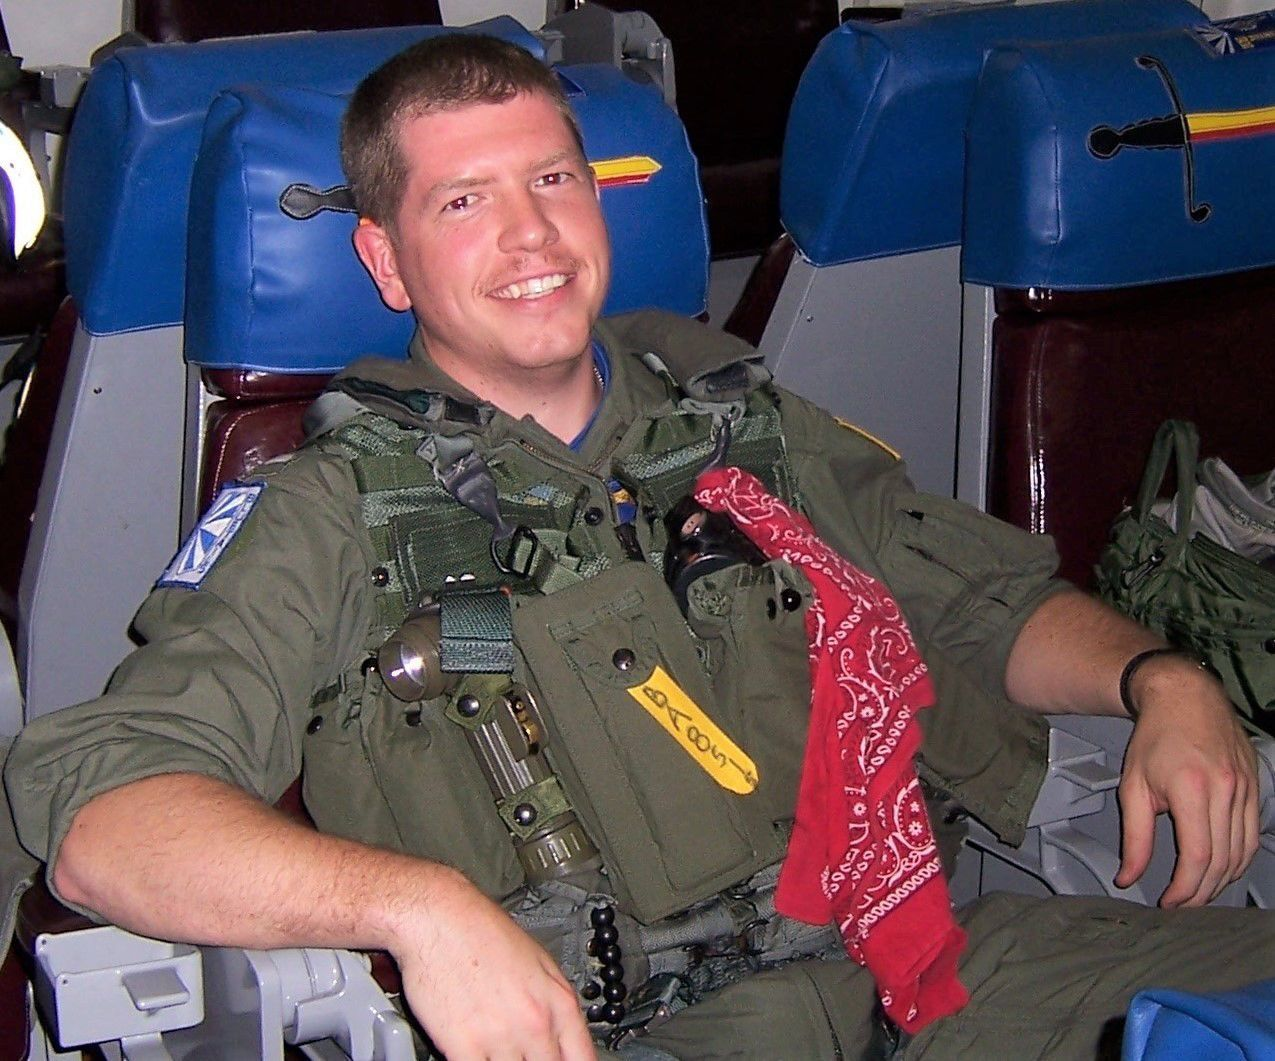 Pax civilian aviation safety officer grateful for second chance to serve